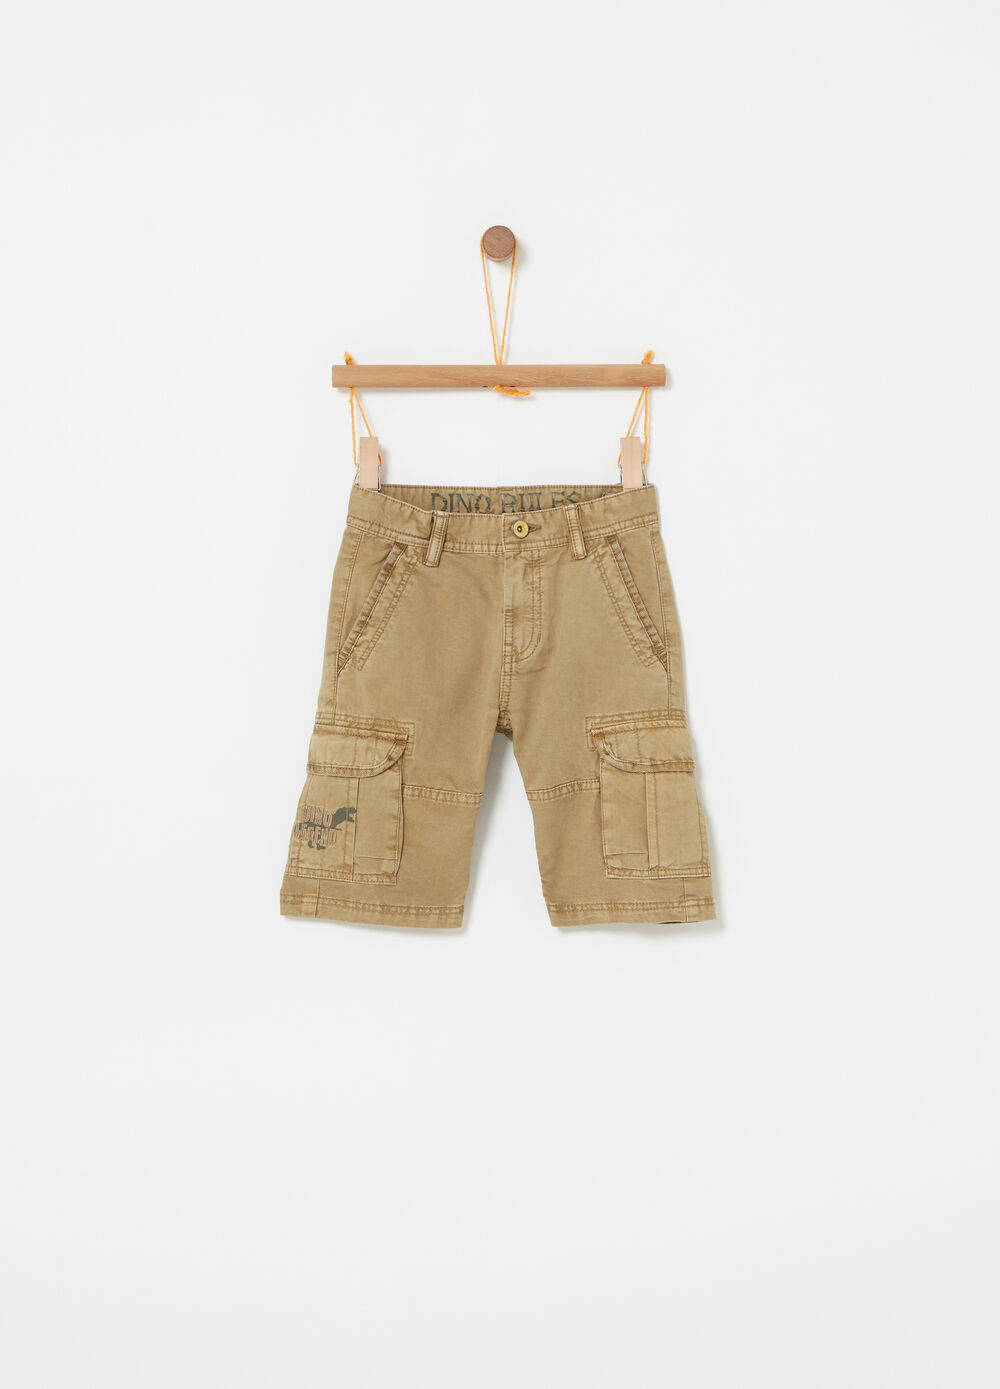 Solid colour cargo shorts with print